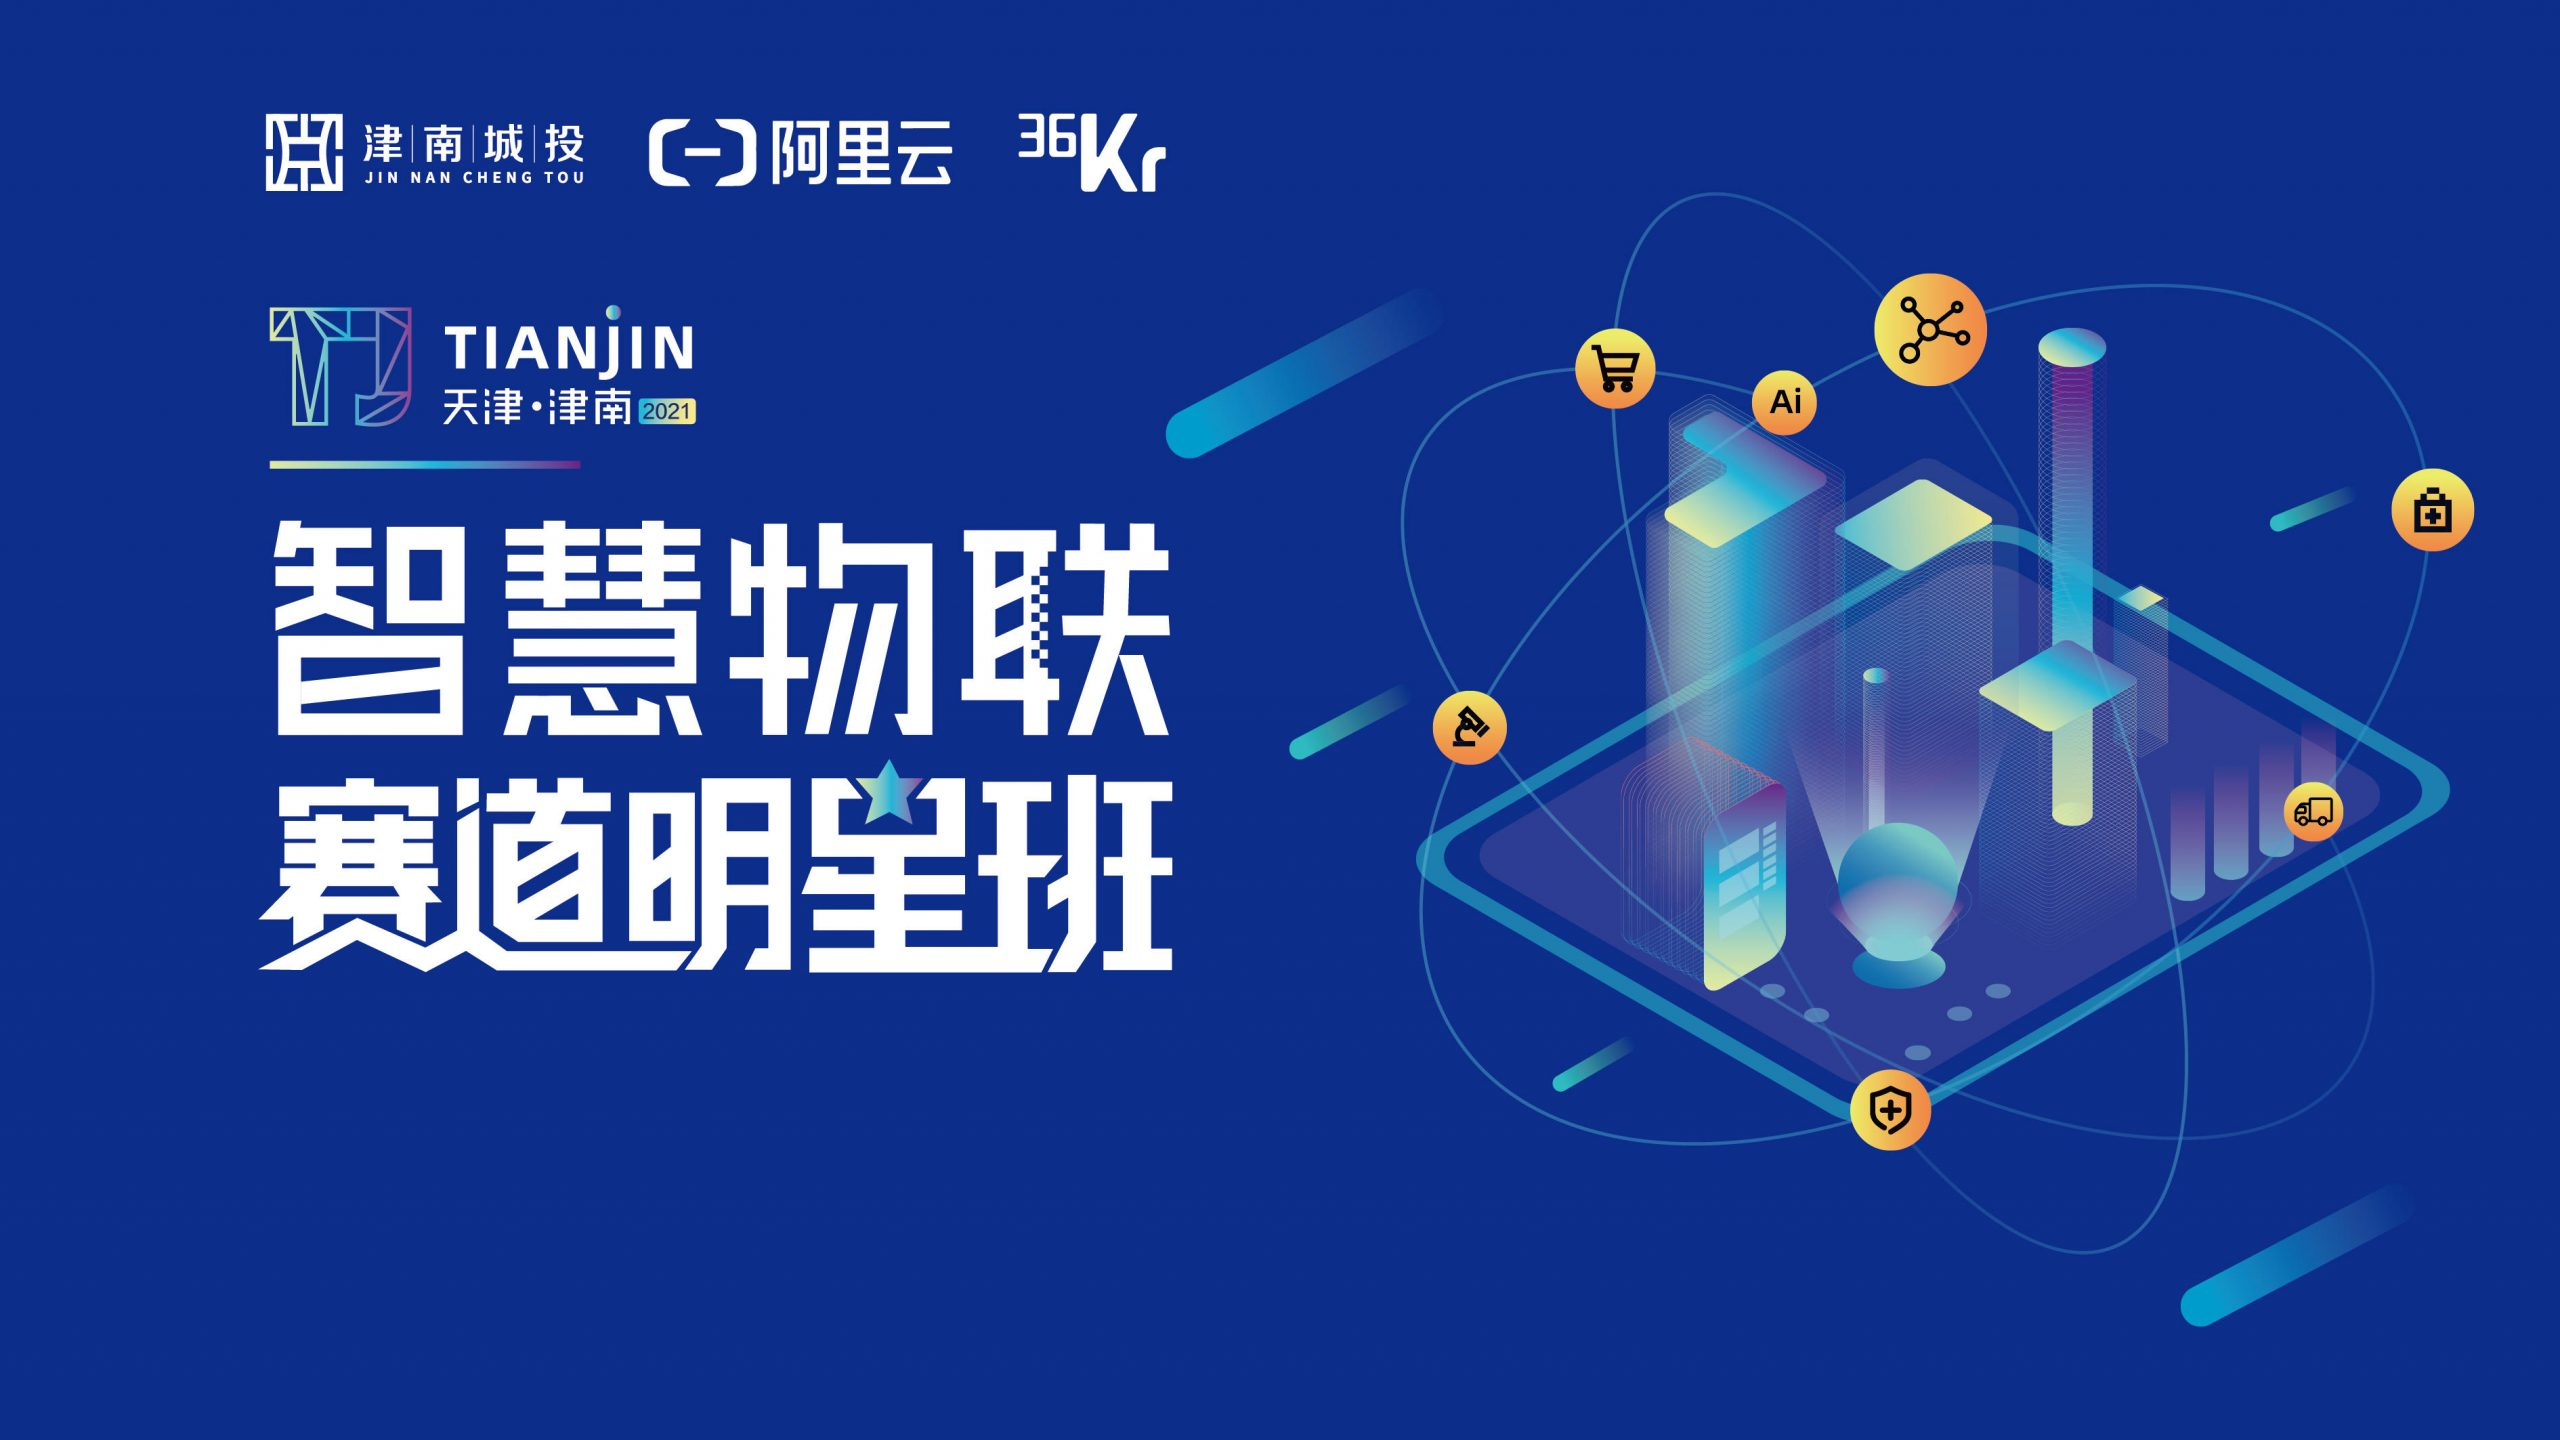 Tianjin Smart Things League Road Star Class Gathering丨When the capital is frenzied, how can enterprises catch the ride of the Smart Things at high speed